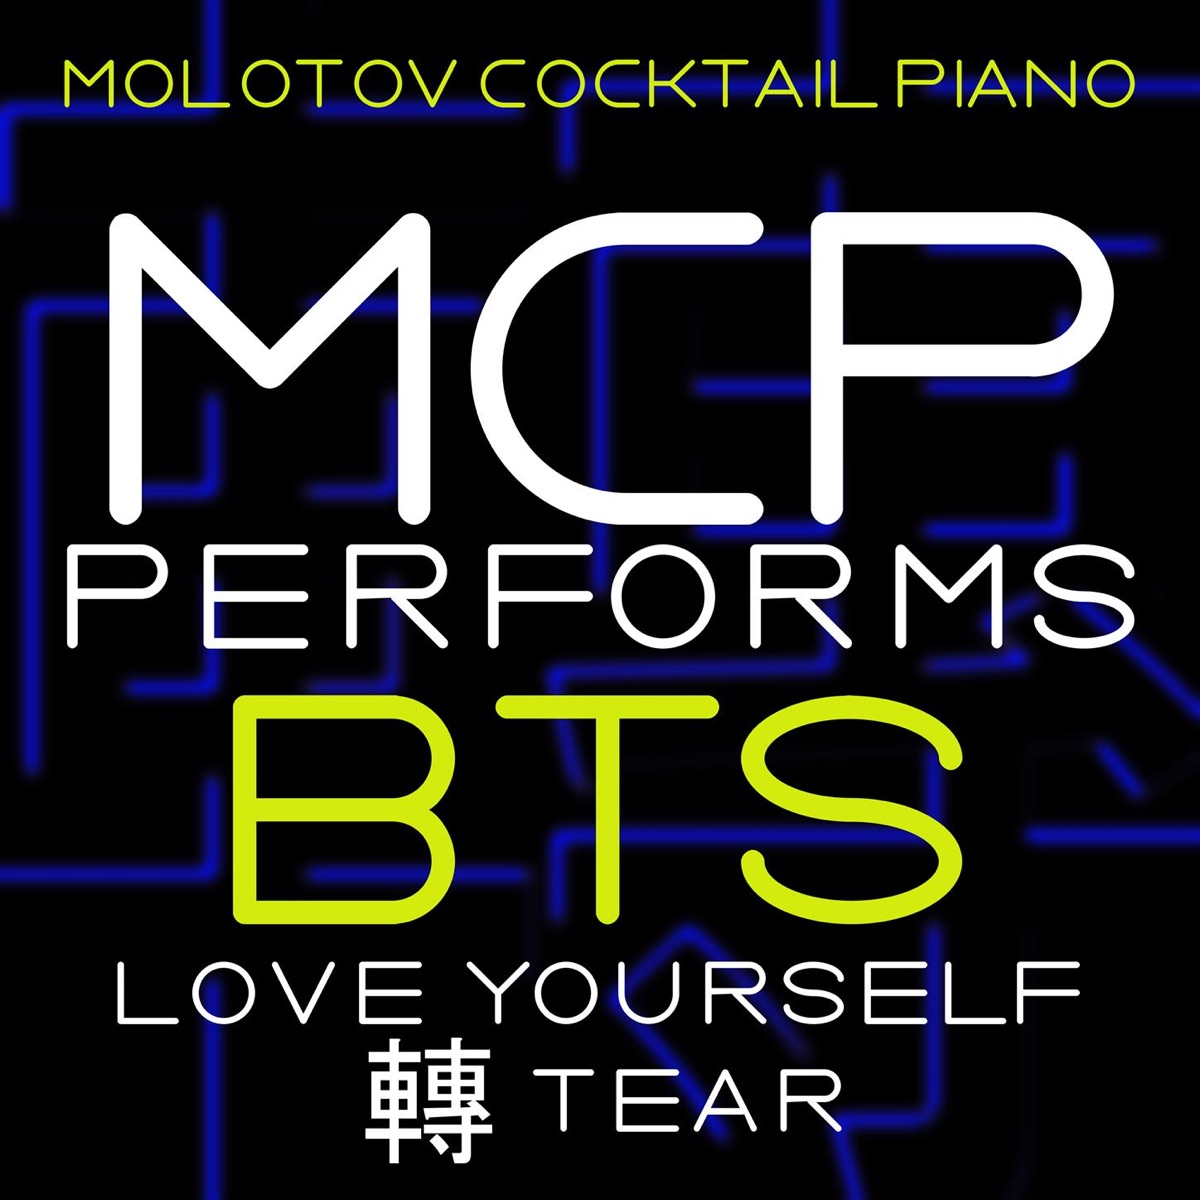 Mcp Performs Bts Love Yourself Tear Album Cover By Molotov